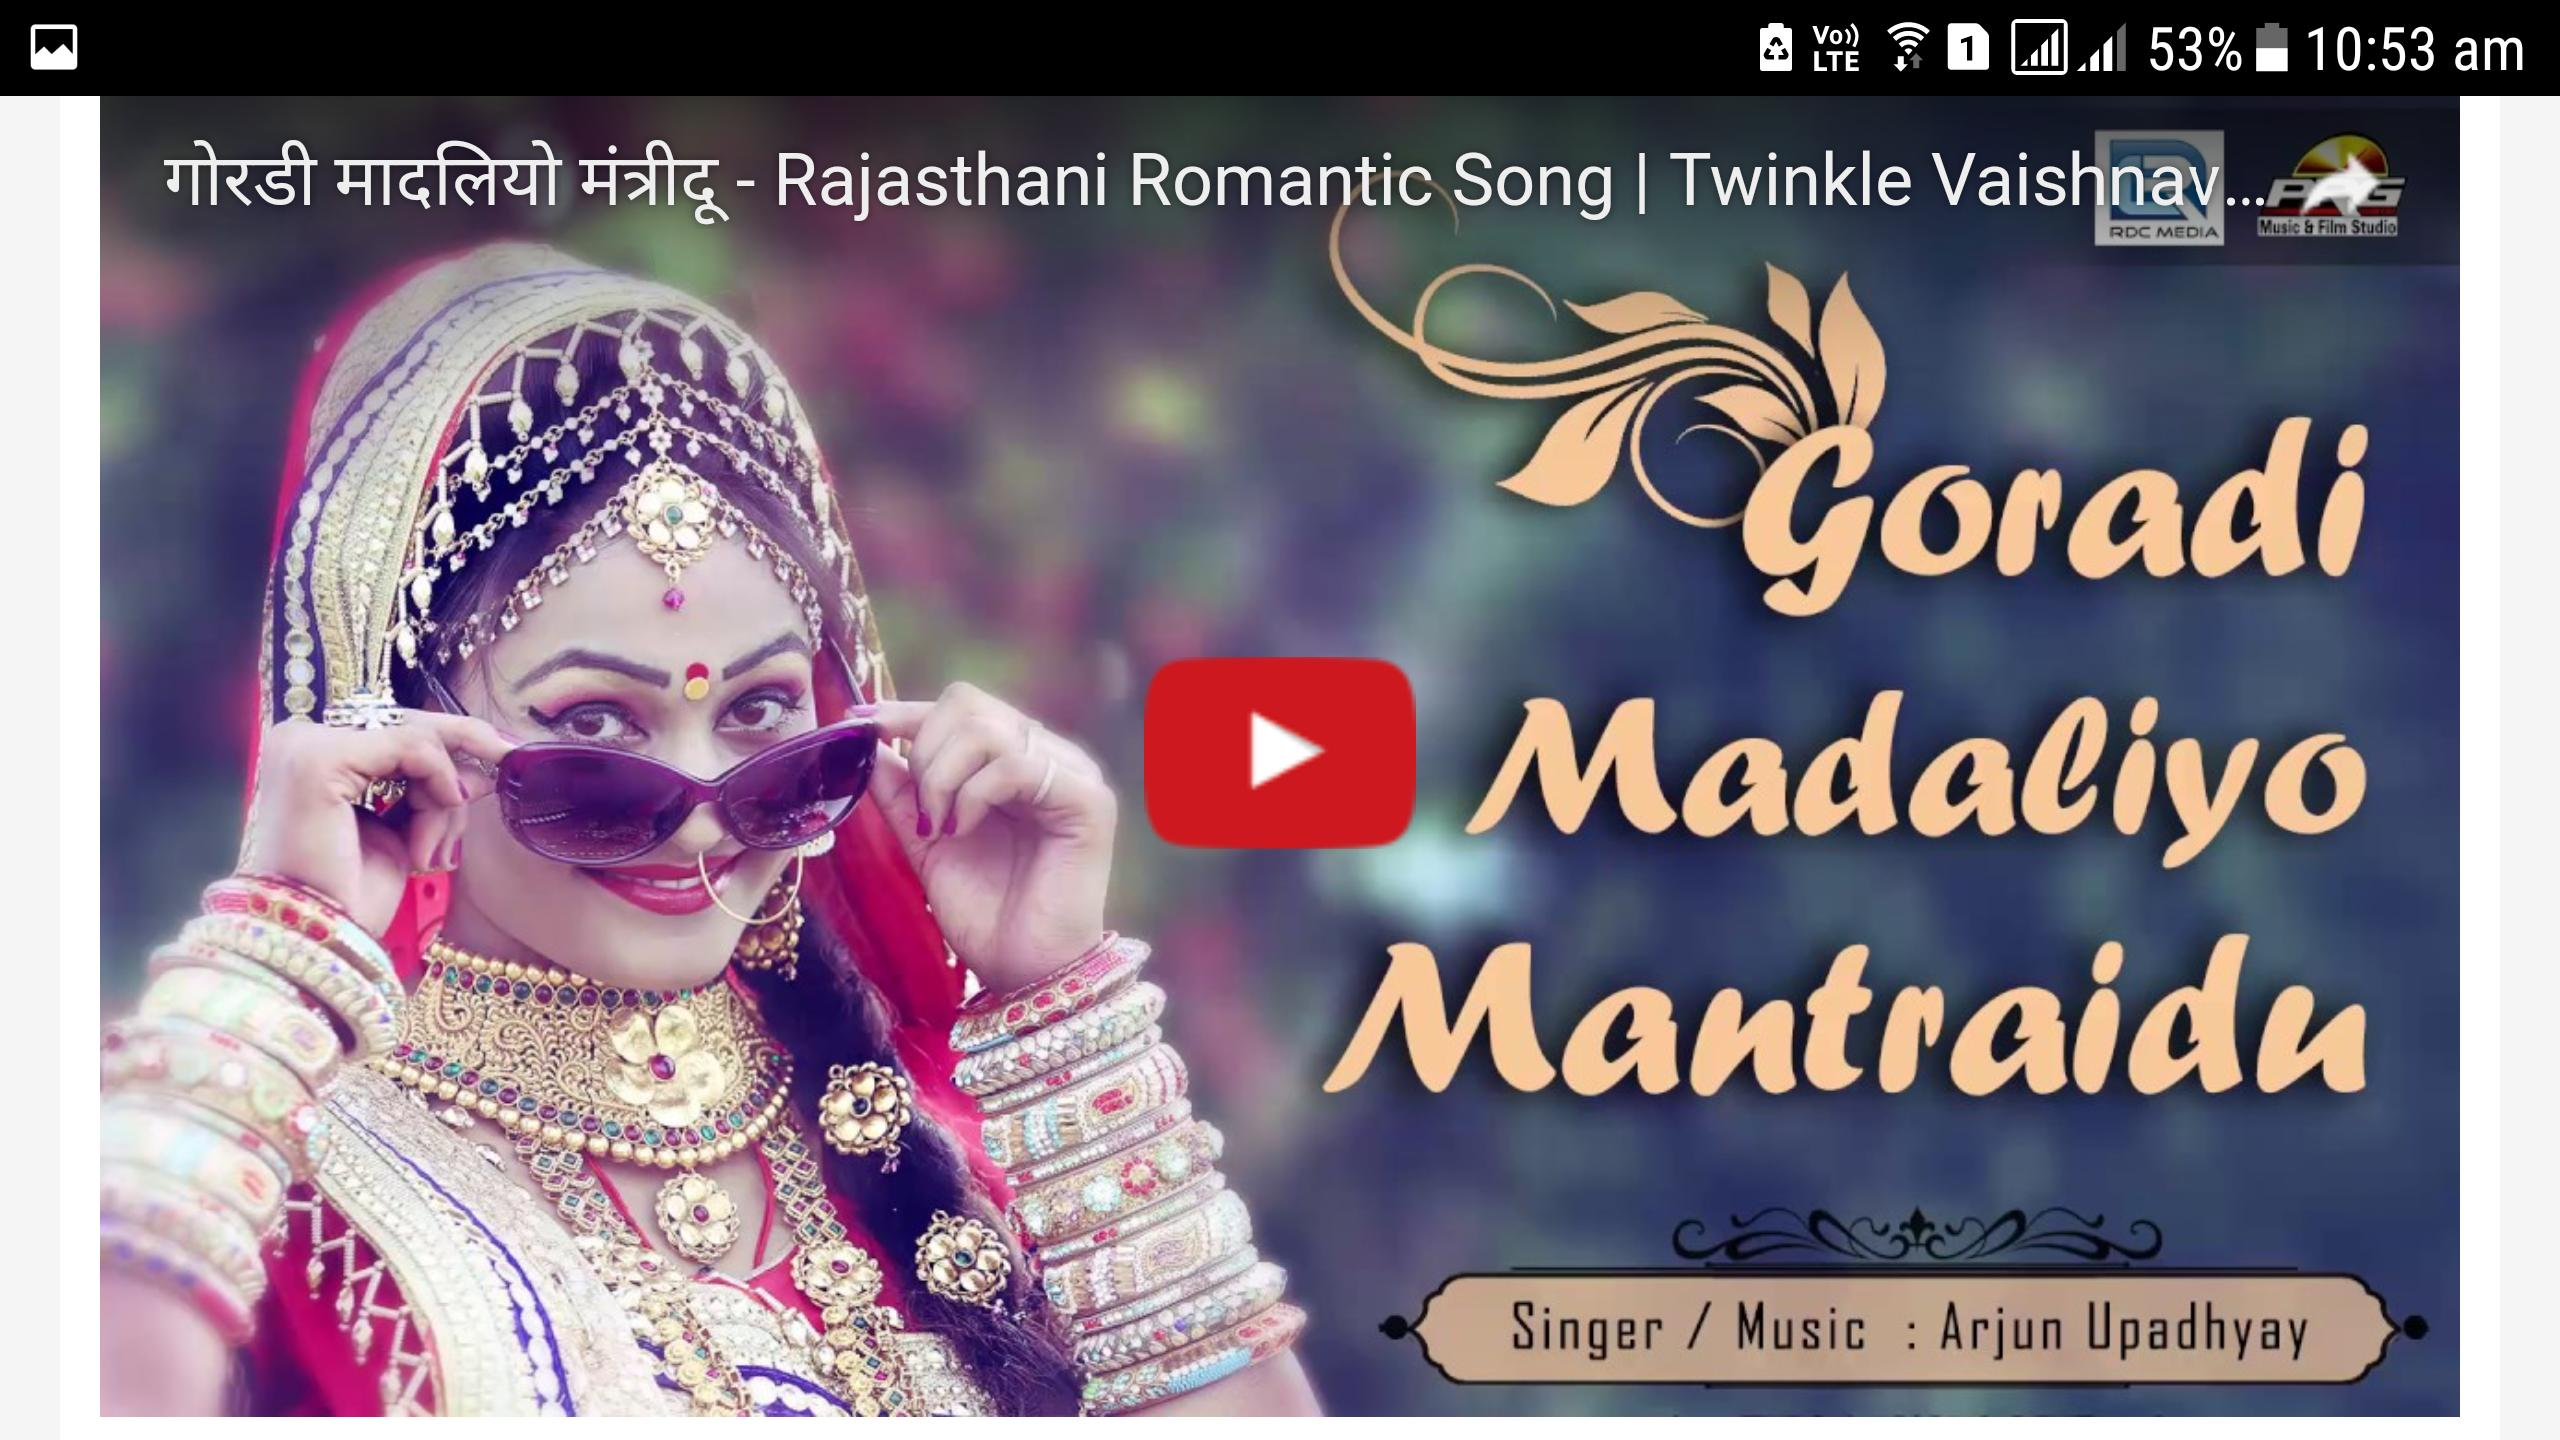 Rajasthani Video Songs for Android - APK Download